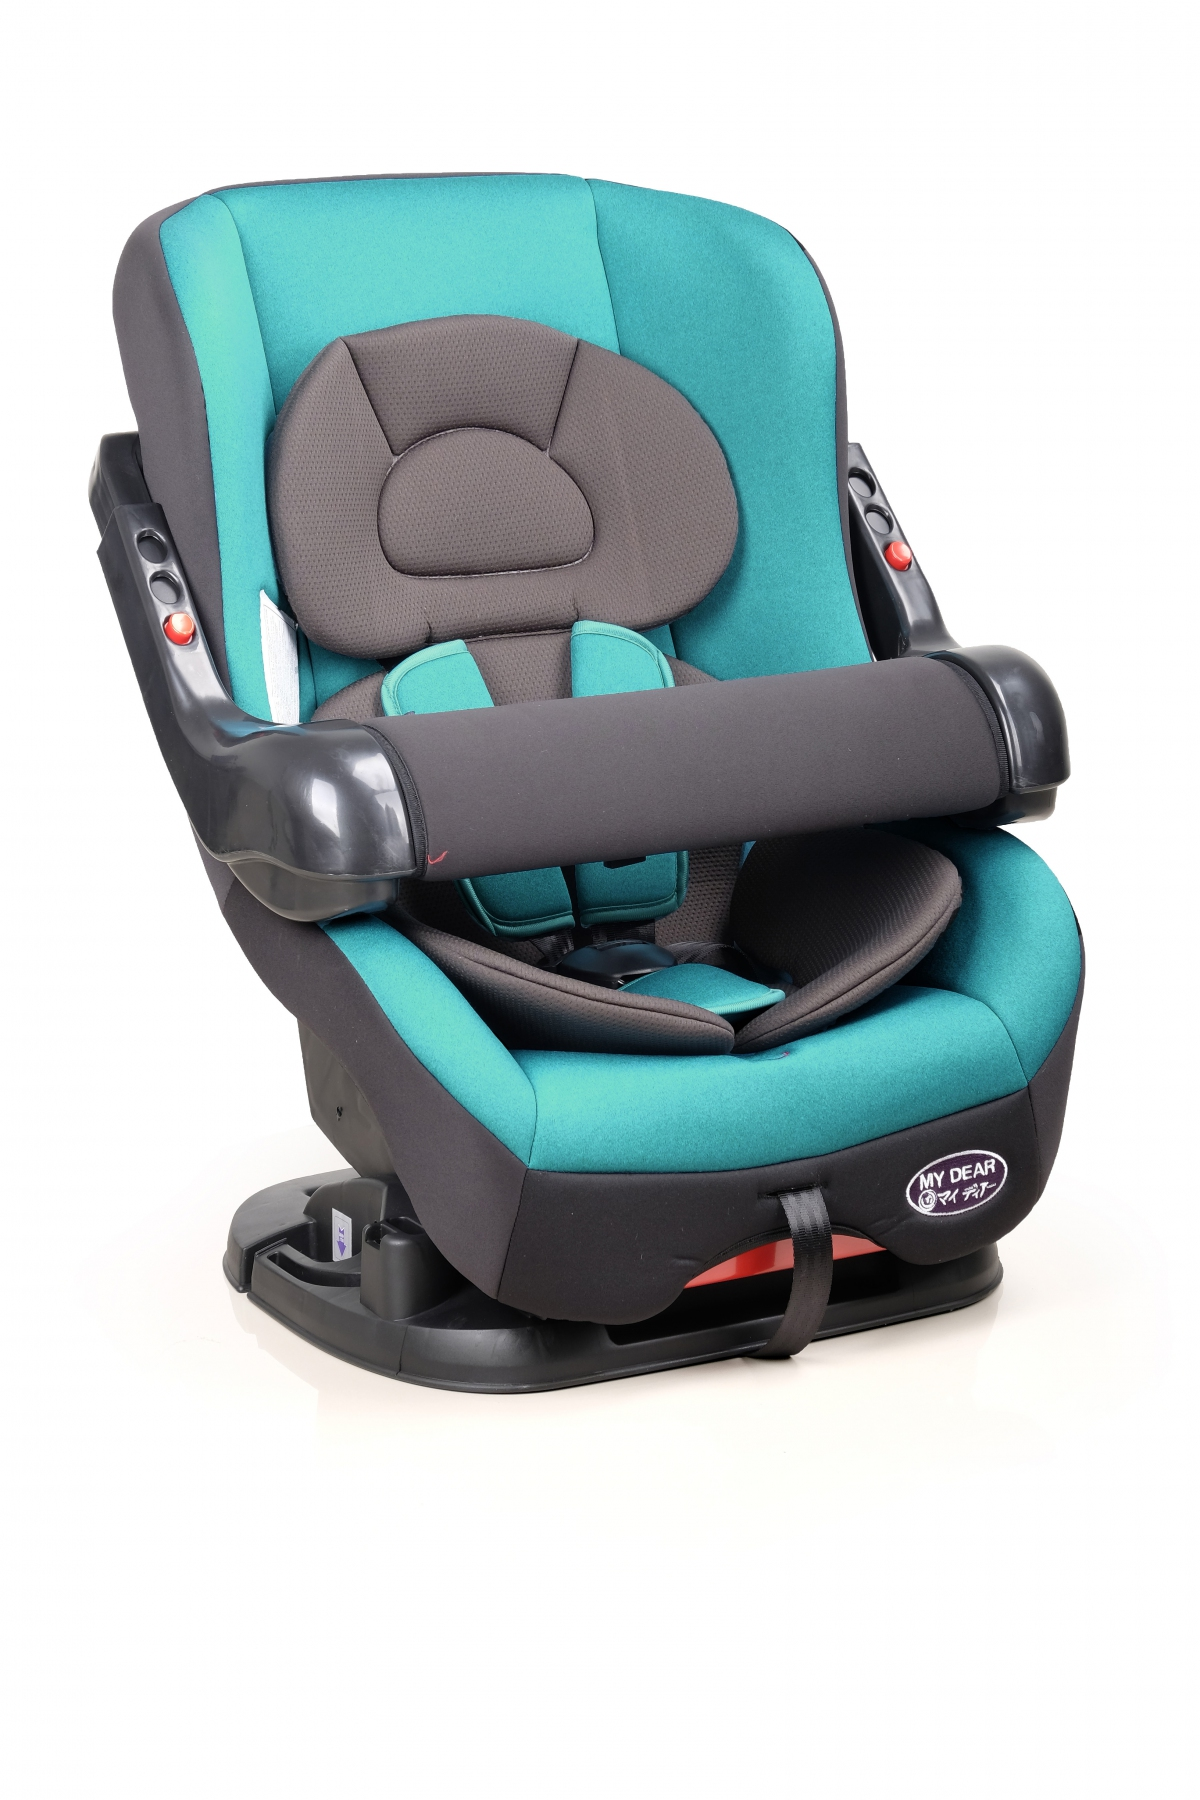 30003 Baby Safety Car Seat Baby Car Seat